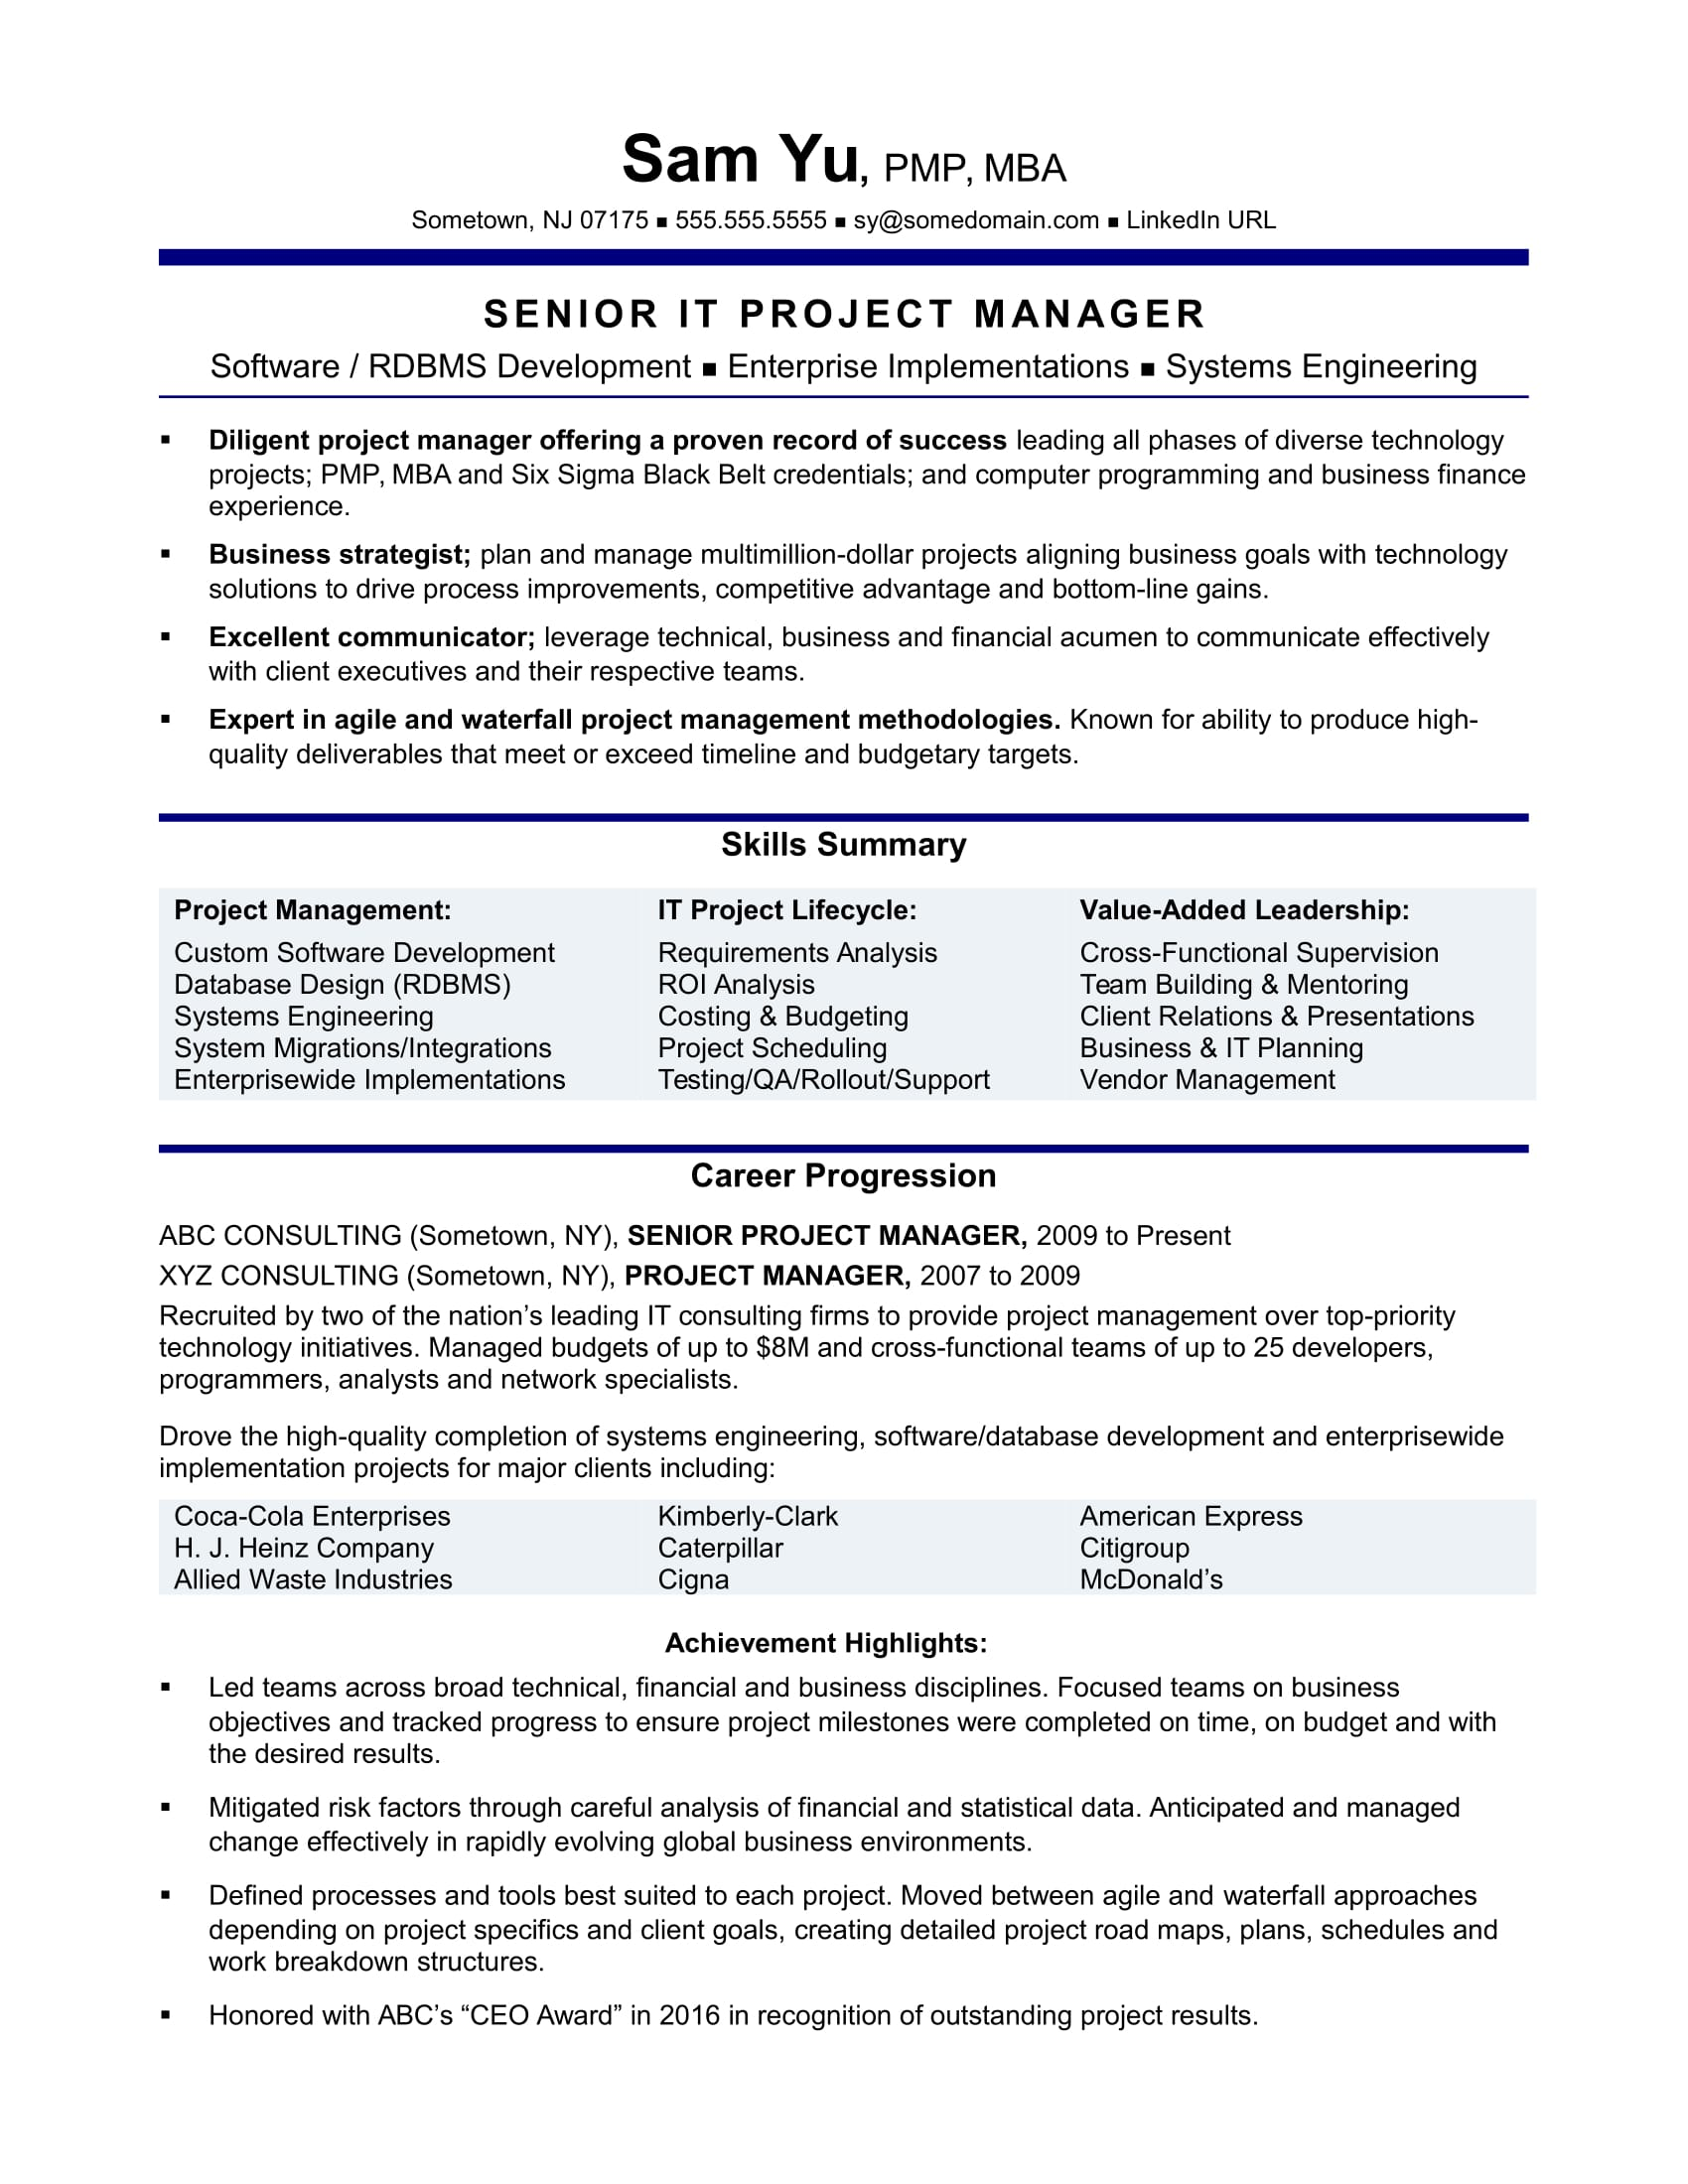 Experienced IT Project Manager Resume Sample  Technical Lead Resume